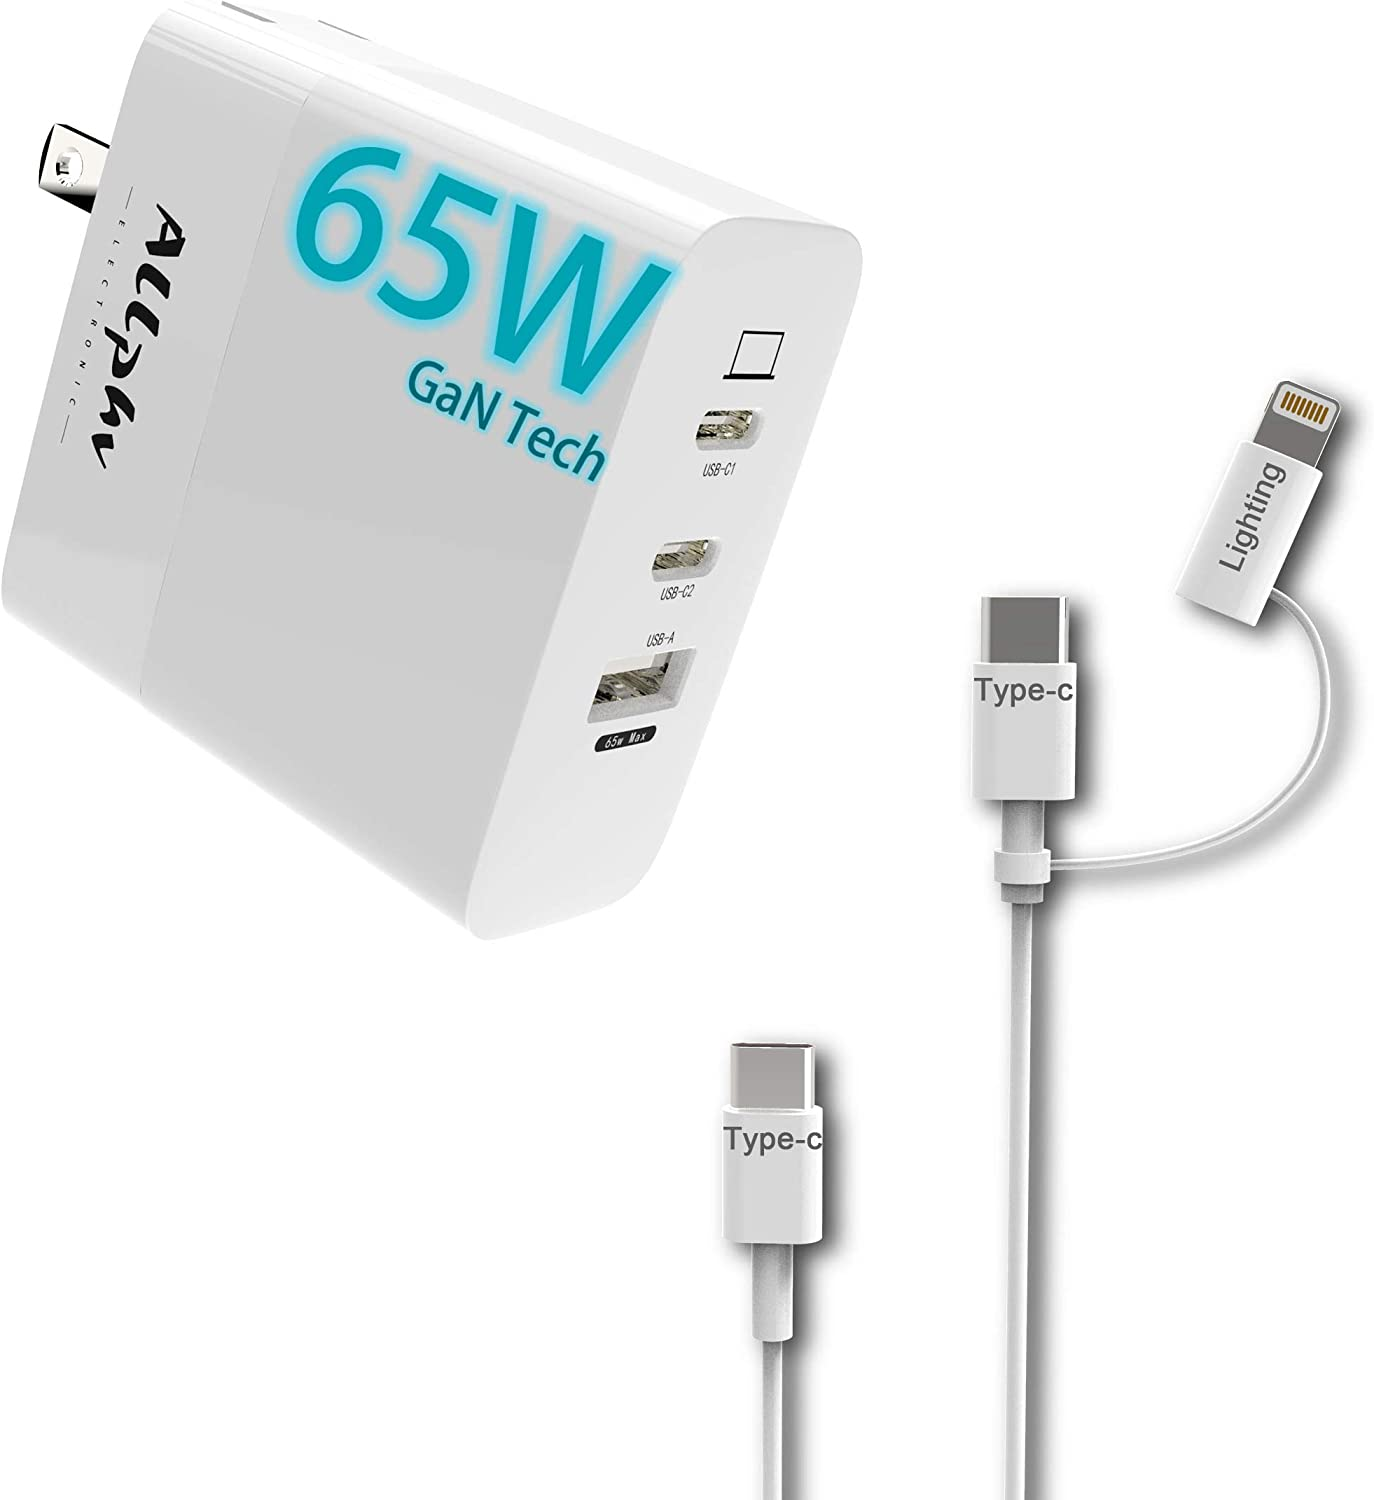 65W USB C Wall Charger GaN Tech Fast Charging 3-Port PD3.0 Charger Compact Type C Adapter with 1M Cable for iPhone;iPad Pro; MacBook Pro, Galaxy S10 S9.